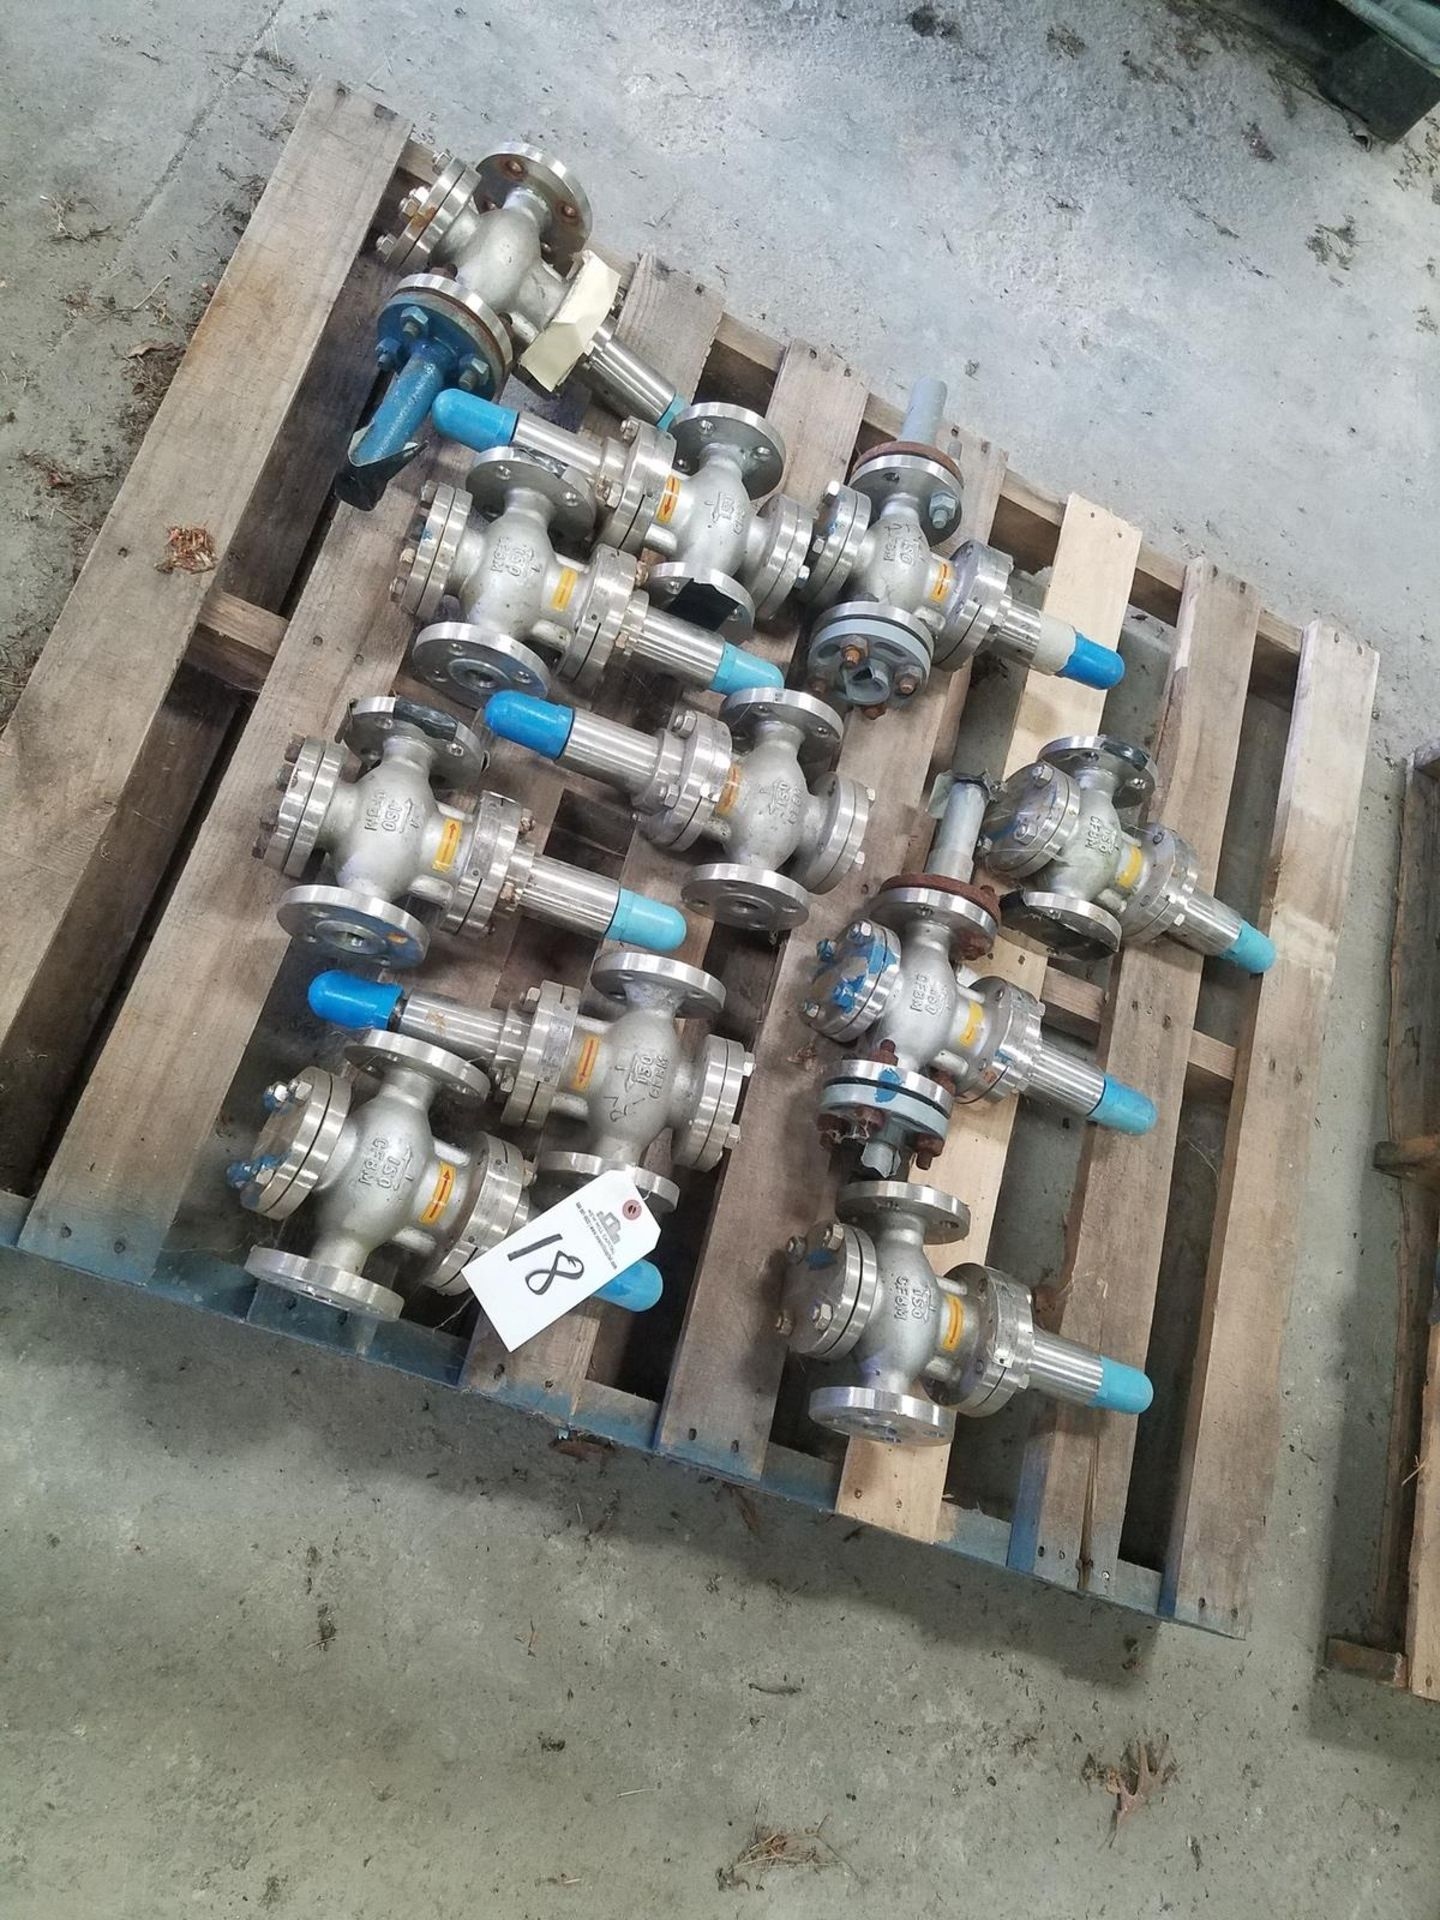 Lot 18 - Lot of Shield Mfg. Stainless Steel Blow-Off Valves | Rig Fee: $50